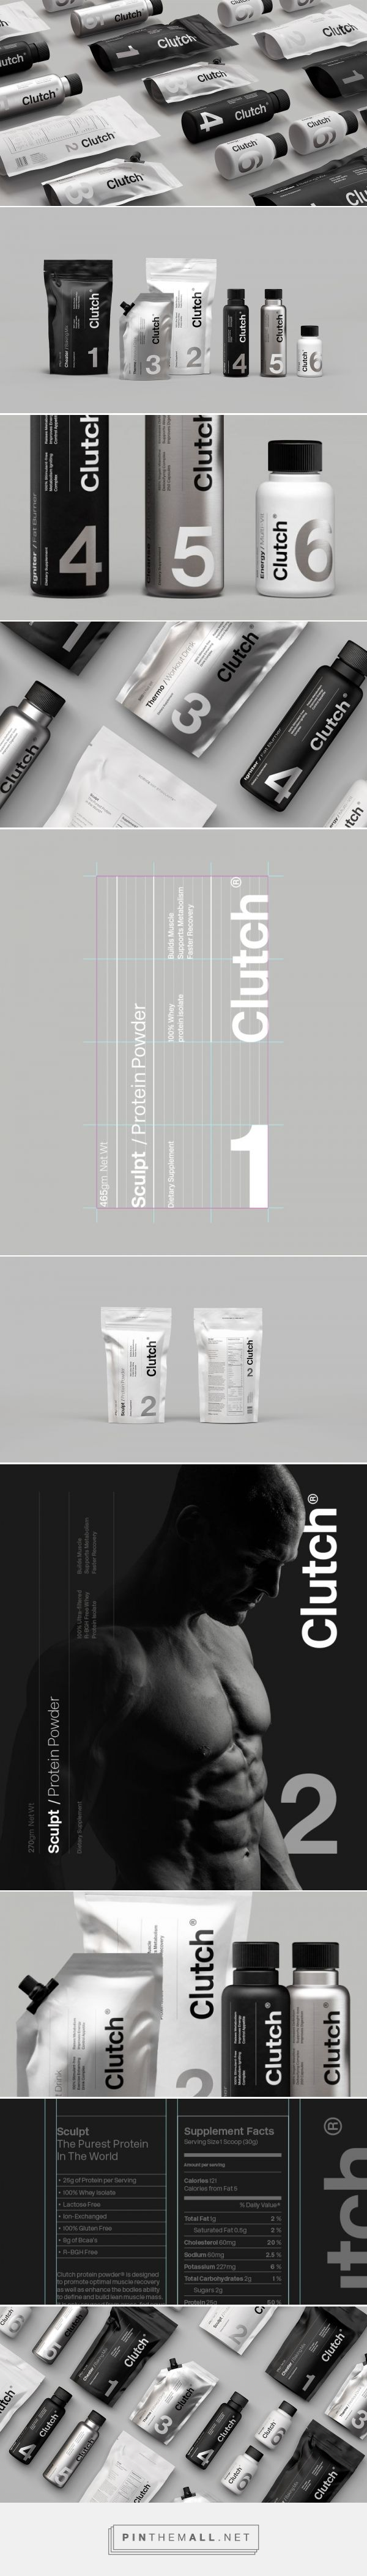 best 디자인패키지 images on pinterest design packaging label